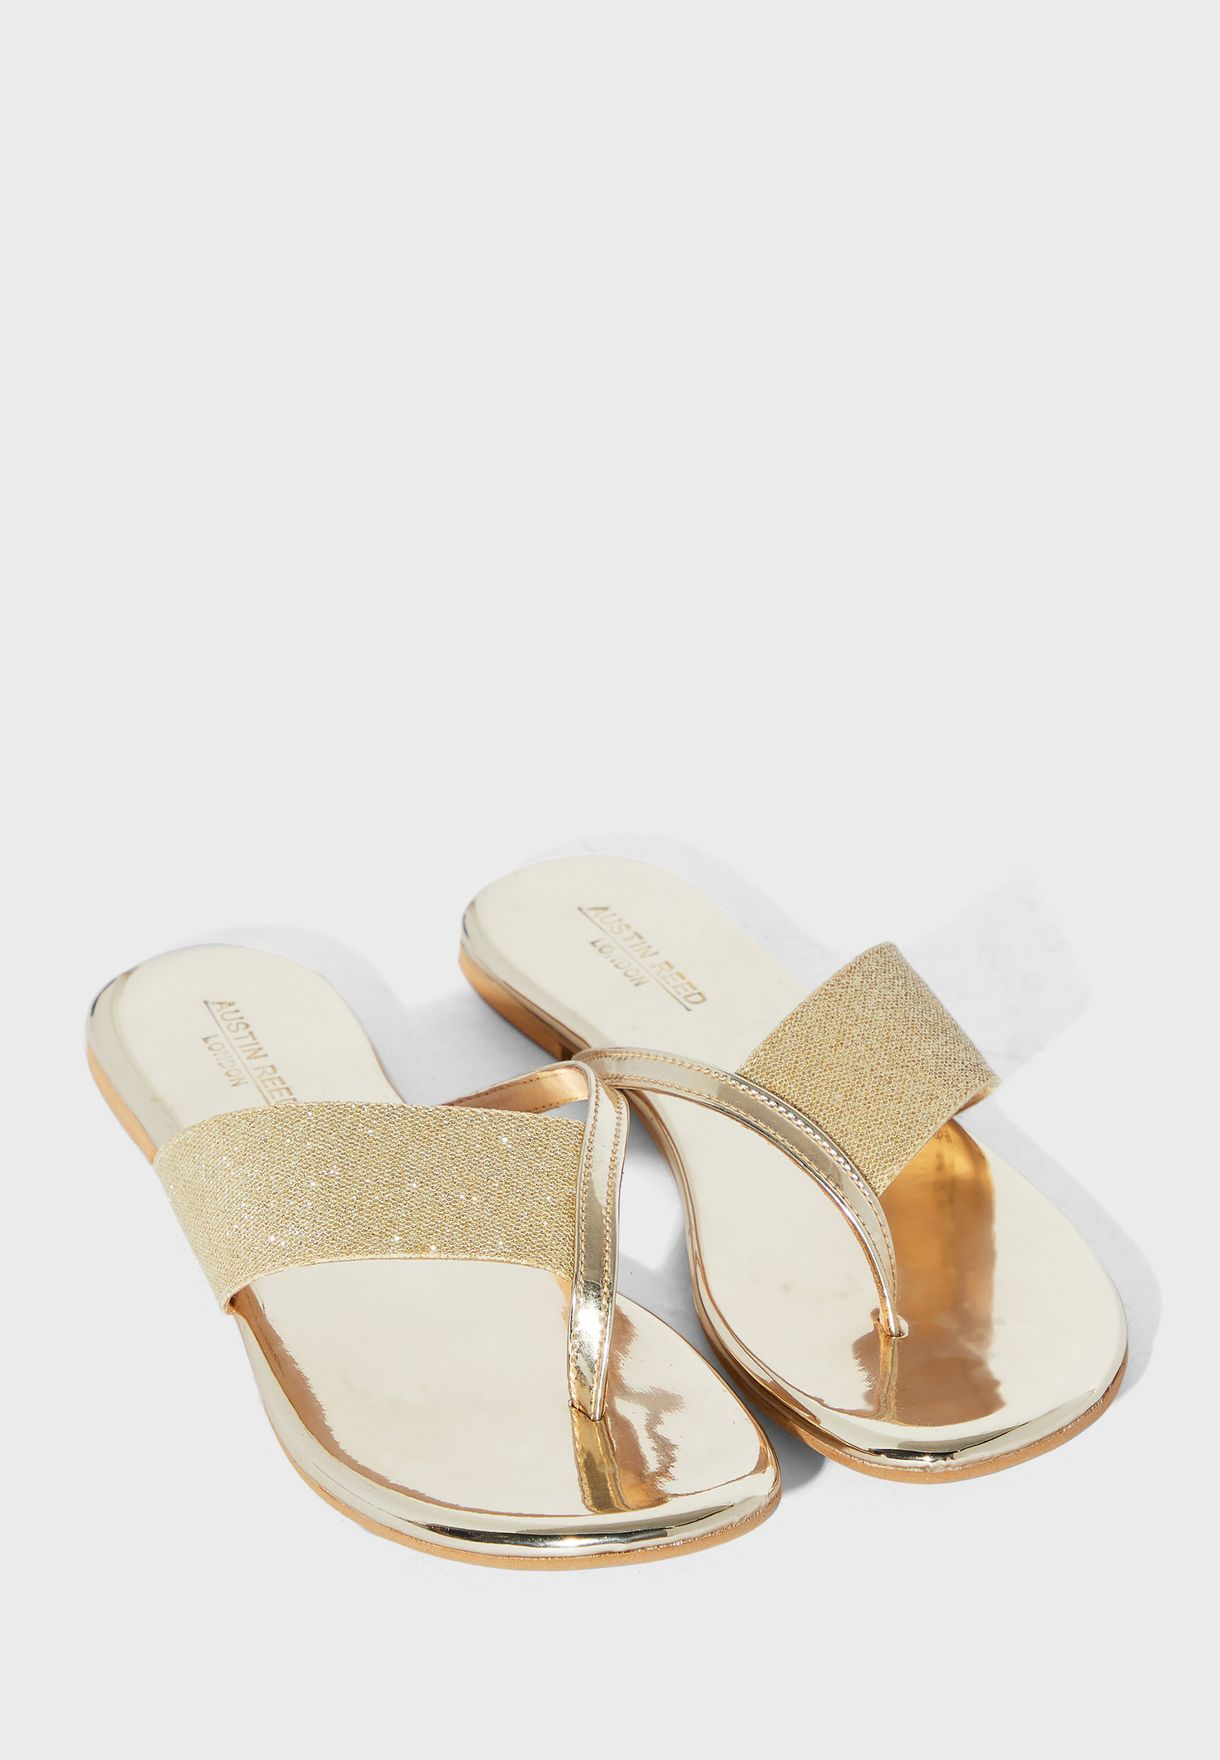 Buy Austin Reed Gold Wide Strap Flat Sandal For Women In Mena Worldwide Aulfs11dff